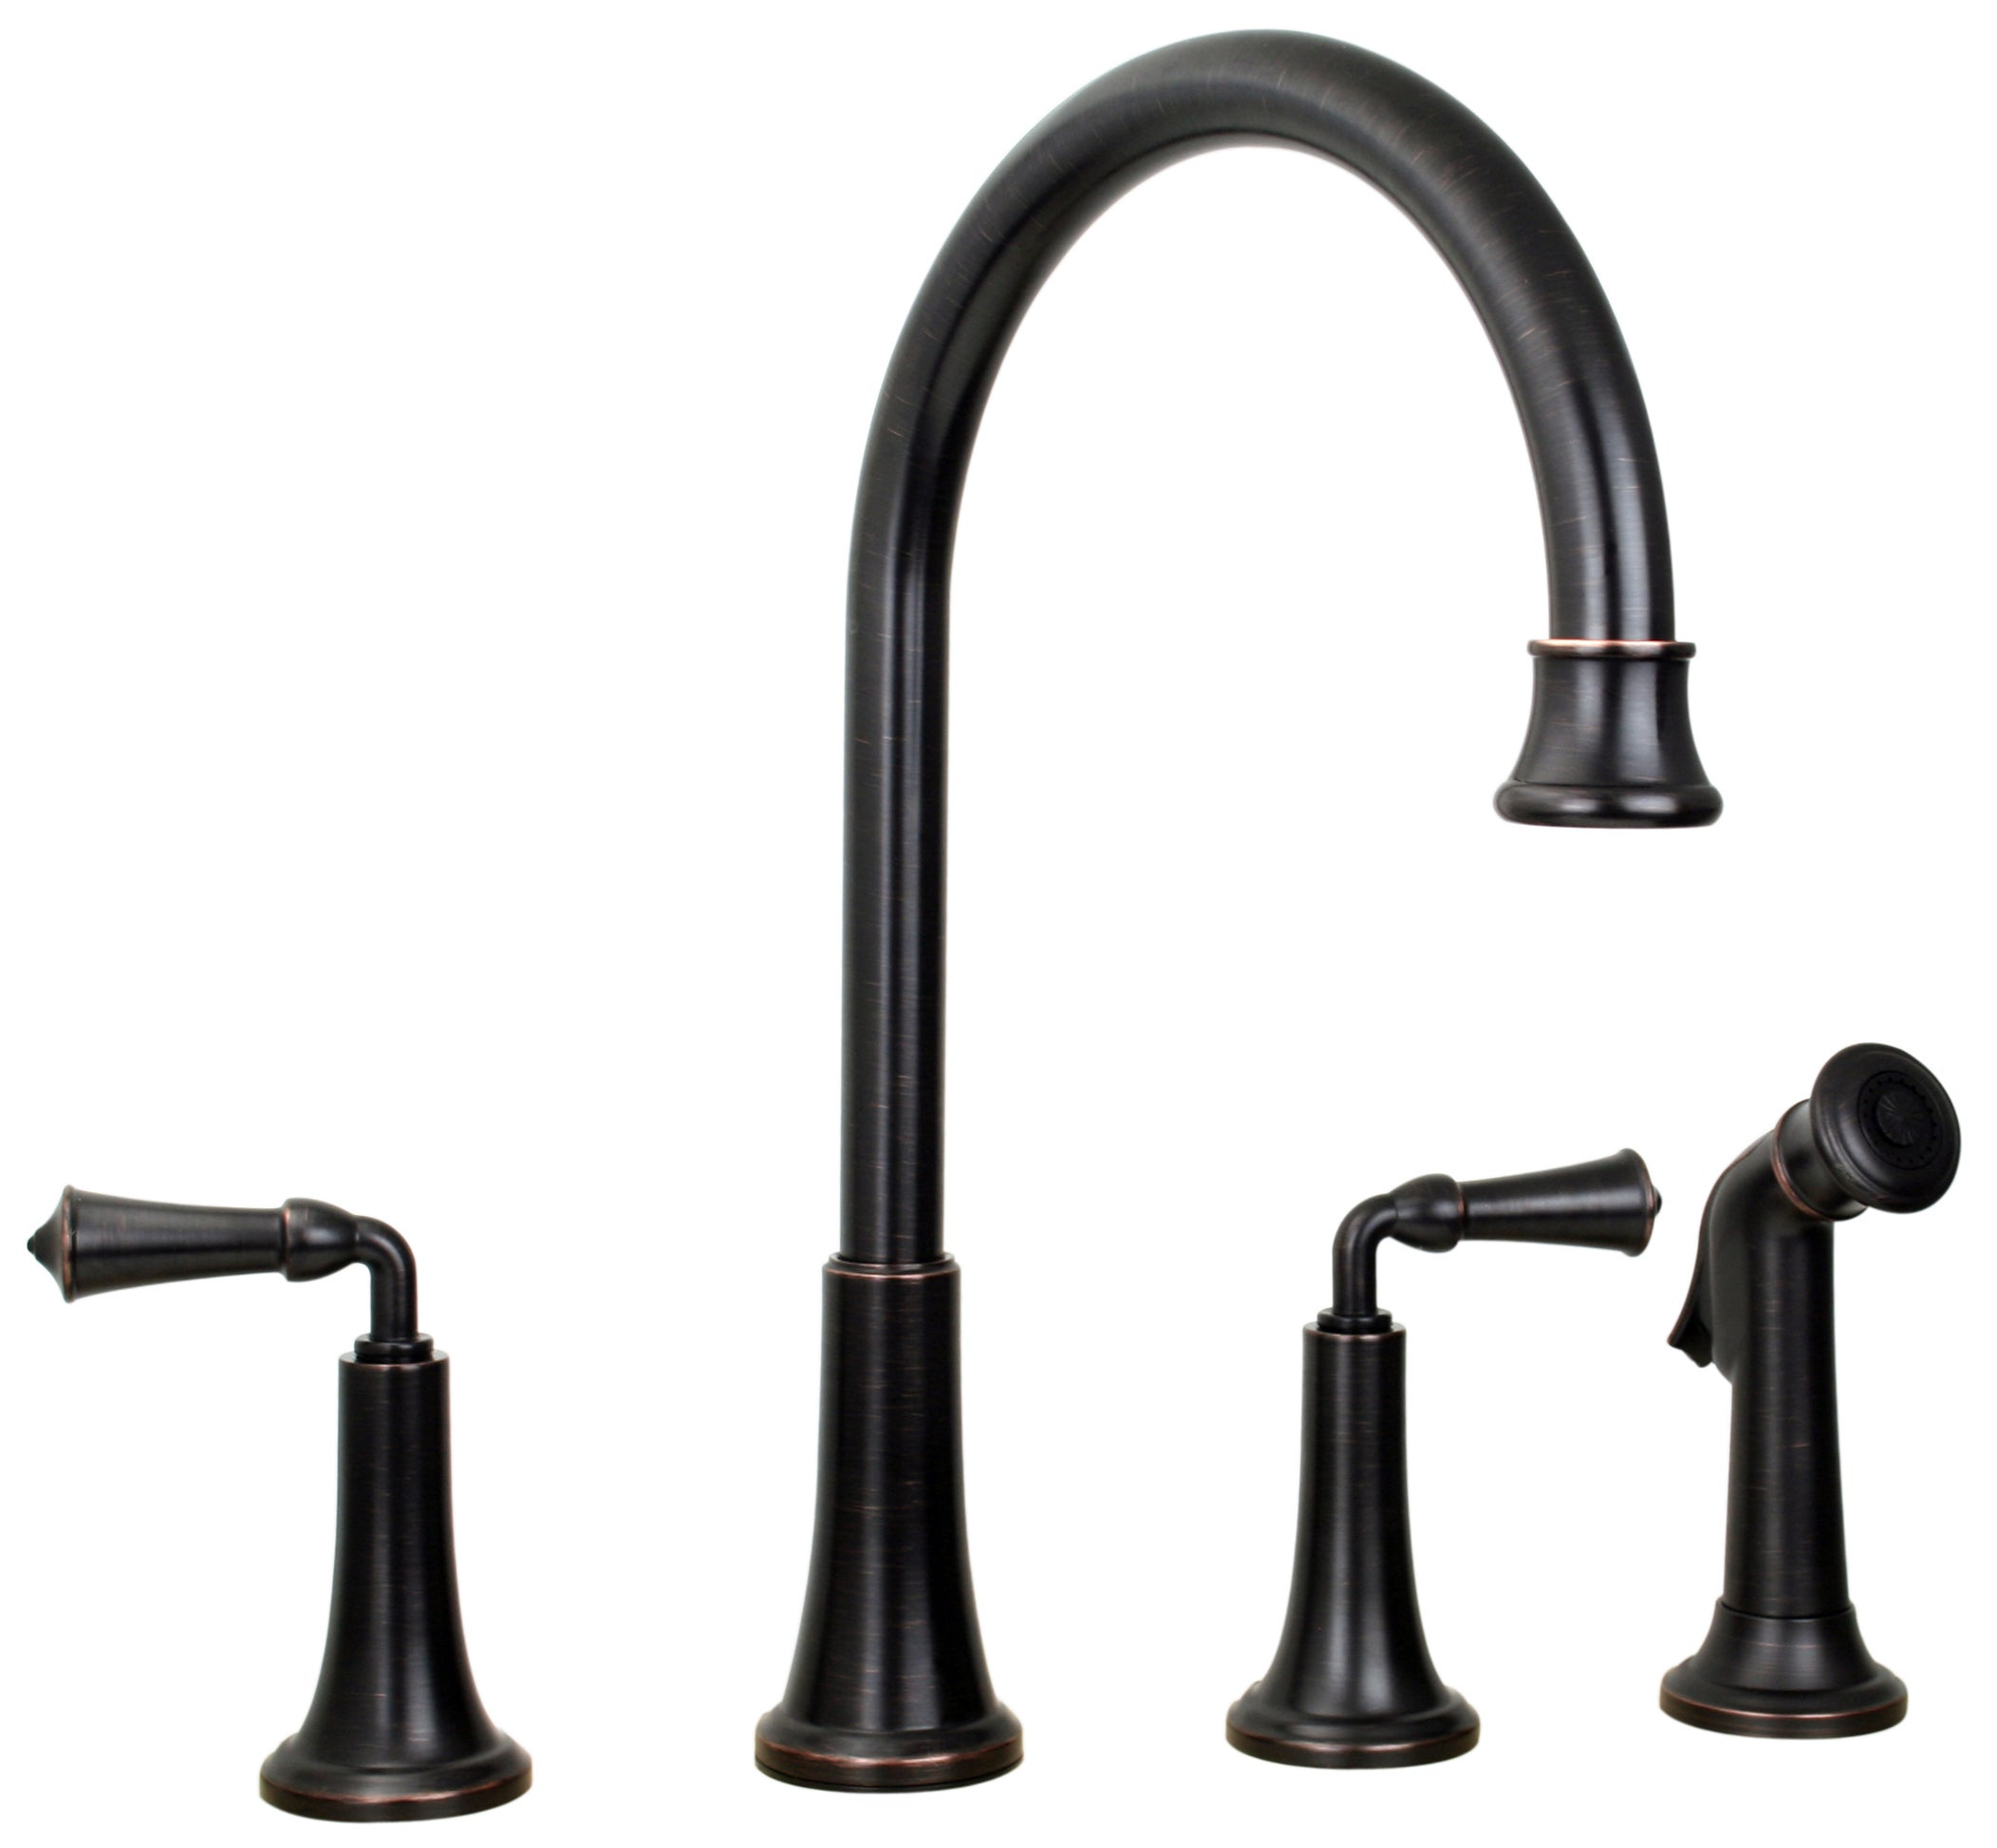 Price Pfister Bellport Tuscan Bronze Two-handle Kitchen Faucet